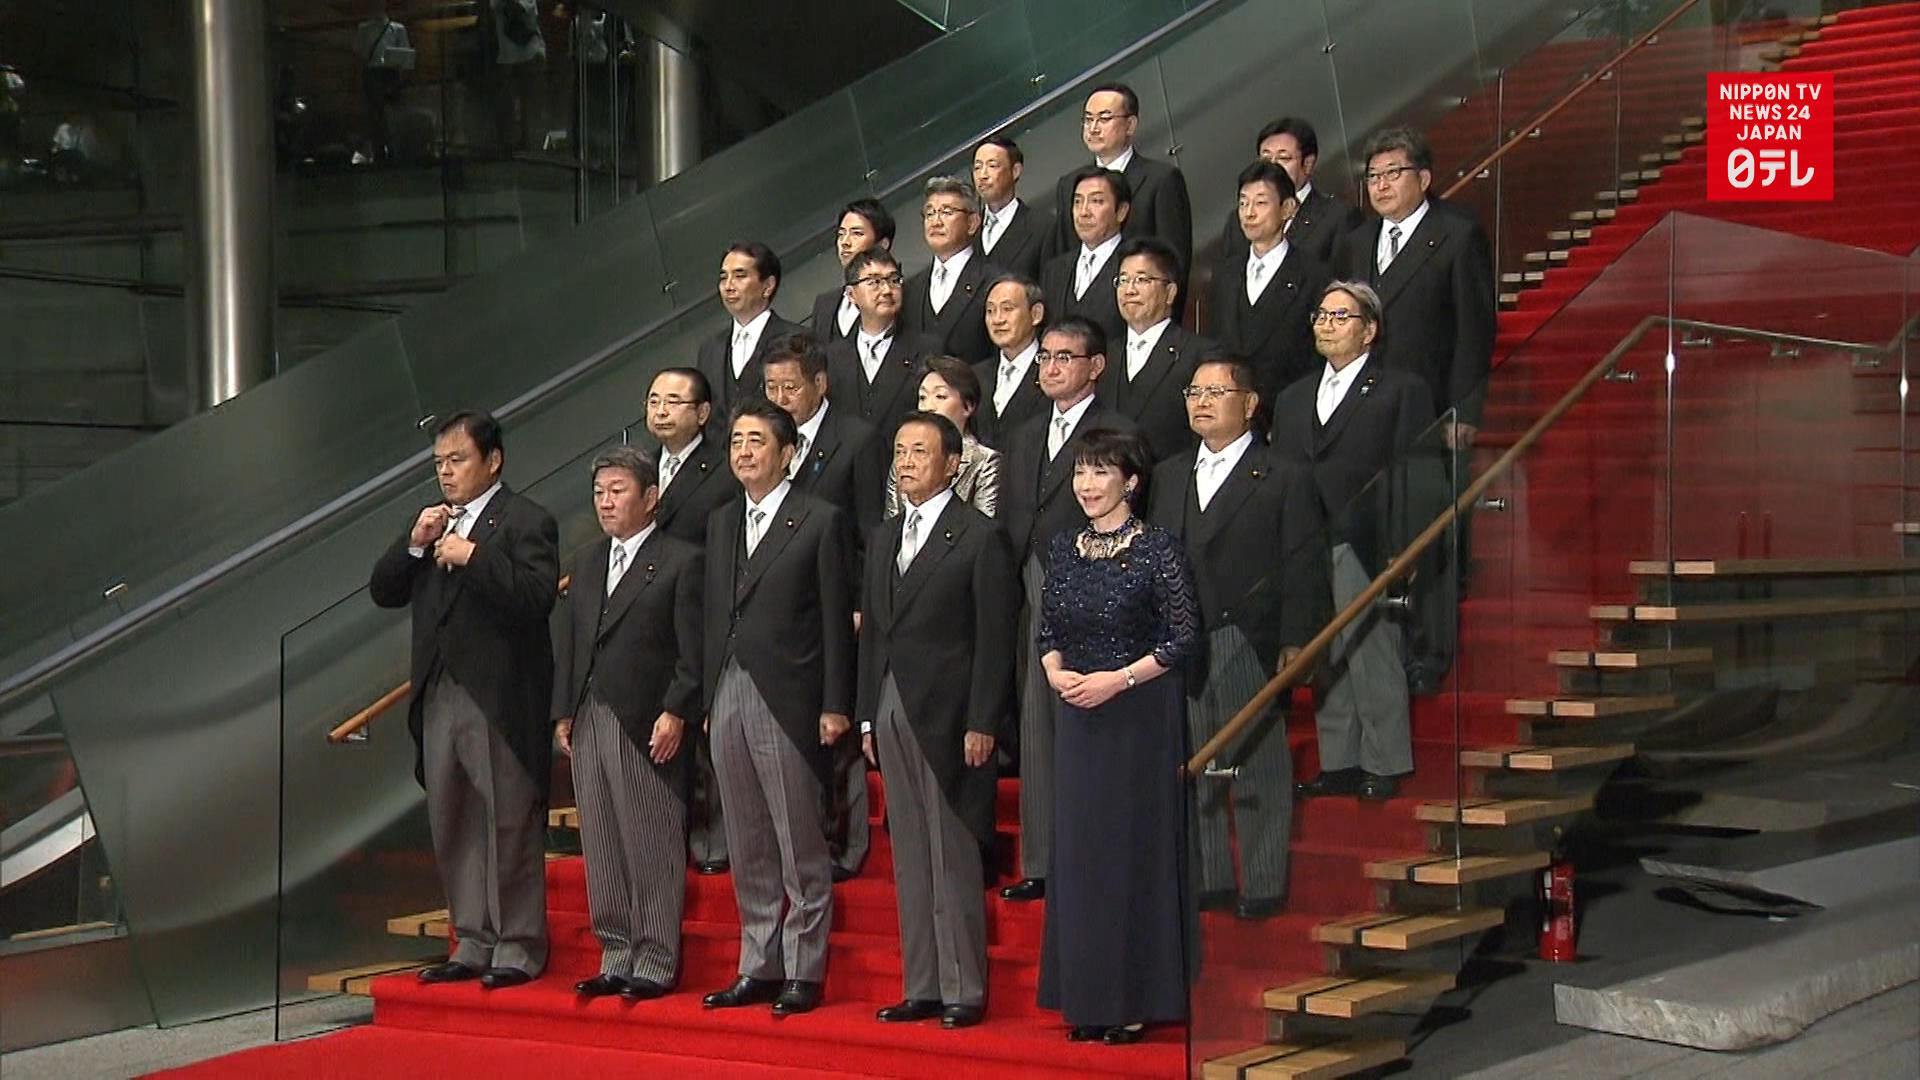 Abe reforms fourth cabinet